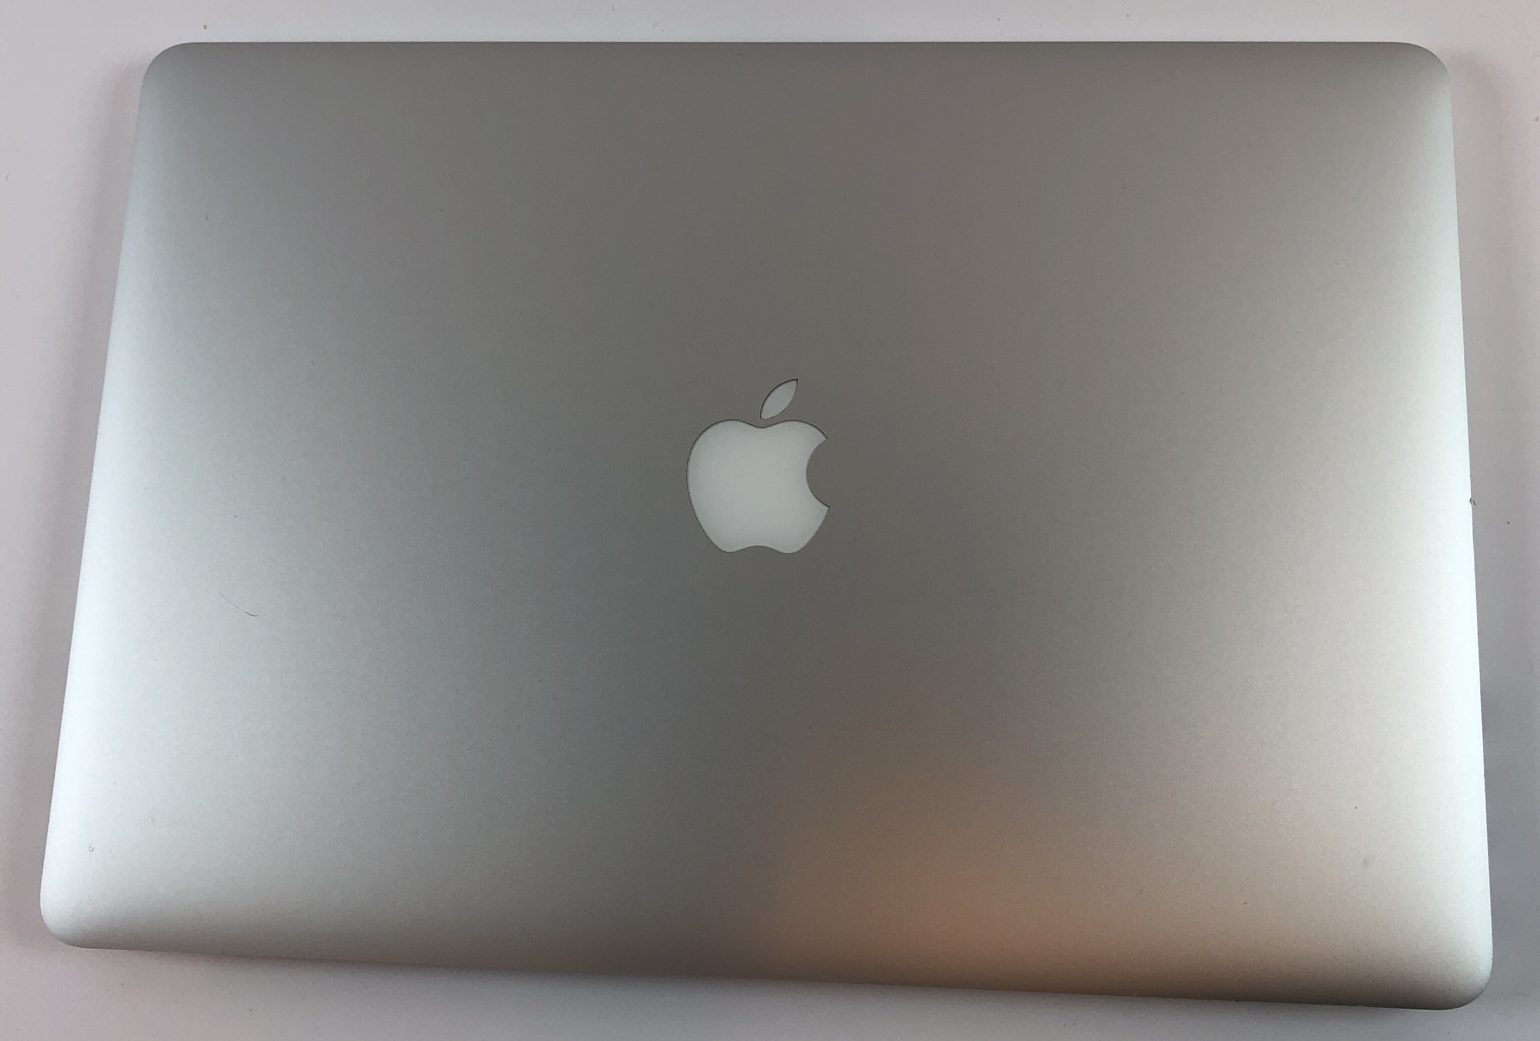 "MacBook Pro Retina 15"" Mid 2015 (Intel Quad-Core i7 2.8 GHz 16 GB RAM 512 GB SSD), Intel Quad-Core i7 2.8 GHz, 16 GB RAM, 512 GB SSD, Kuva 2"